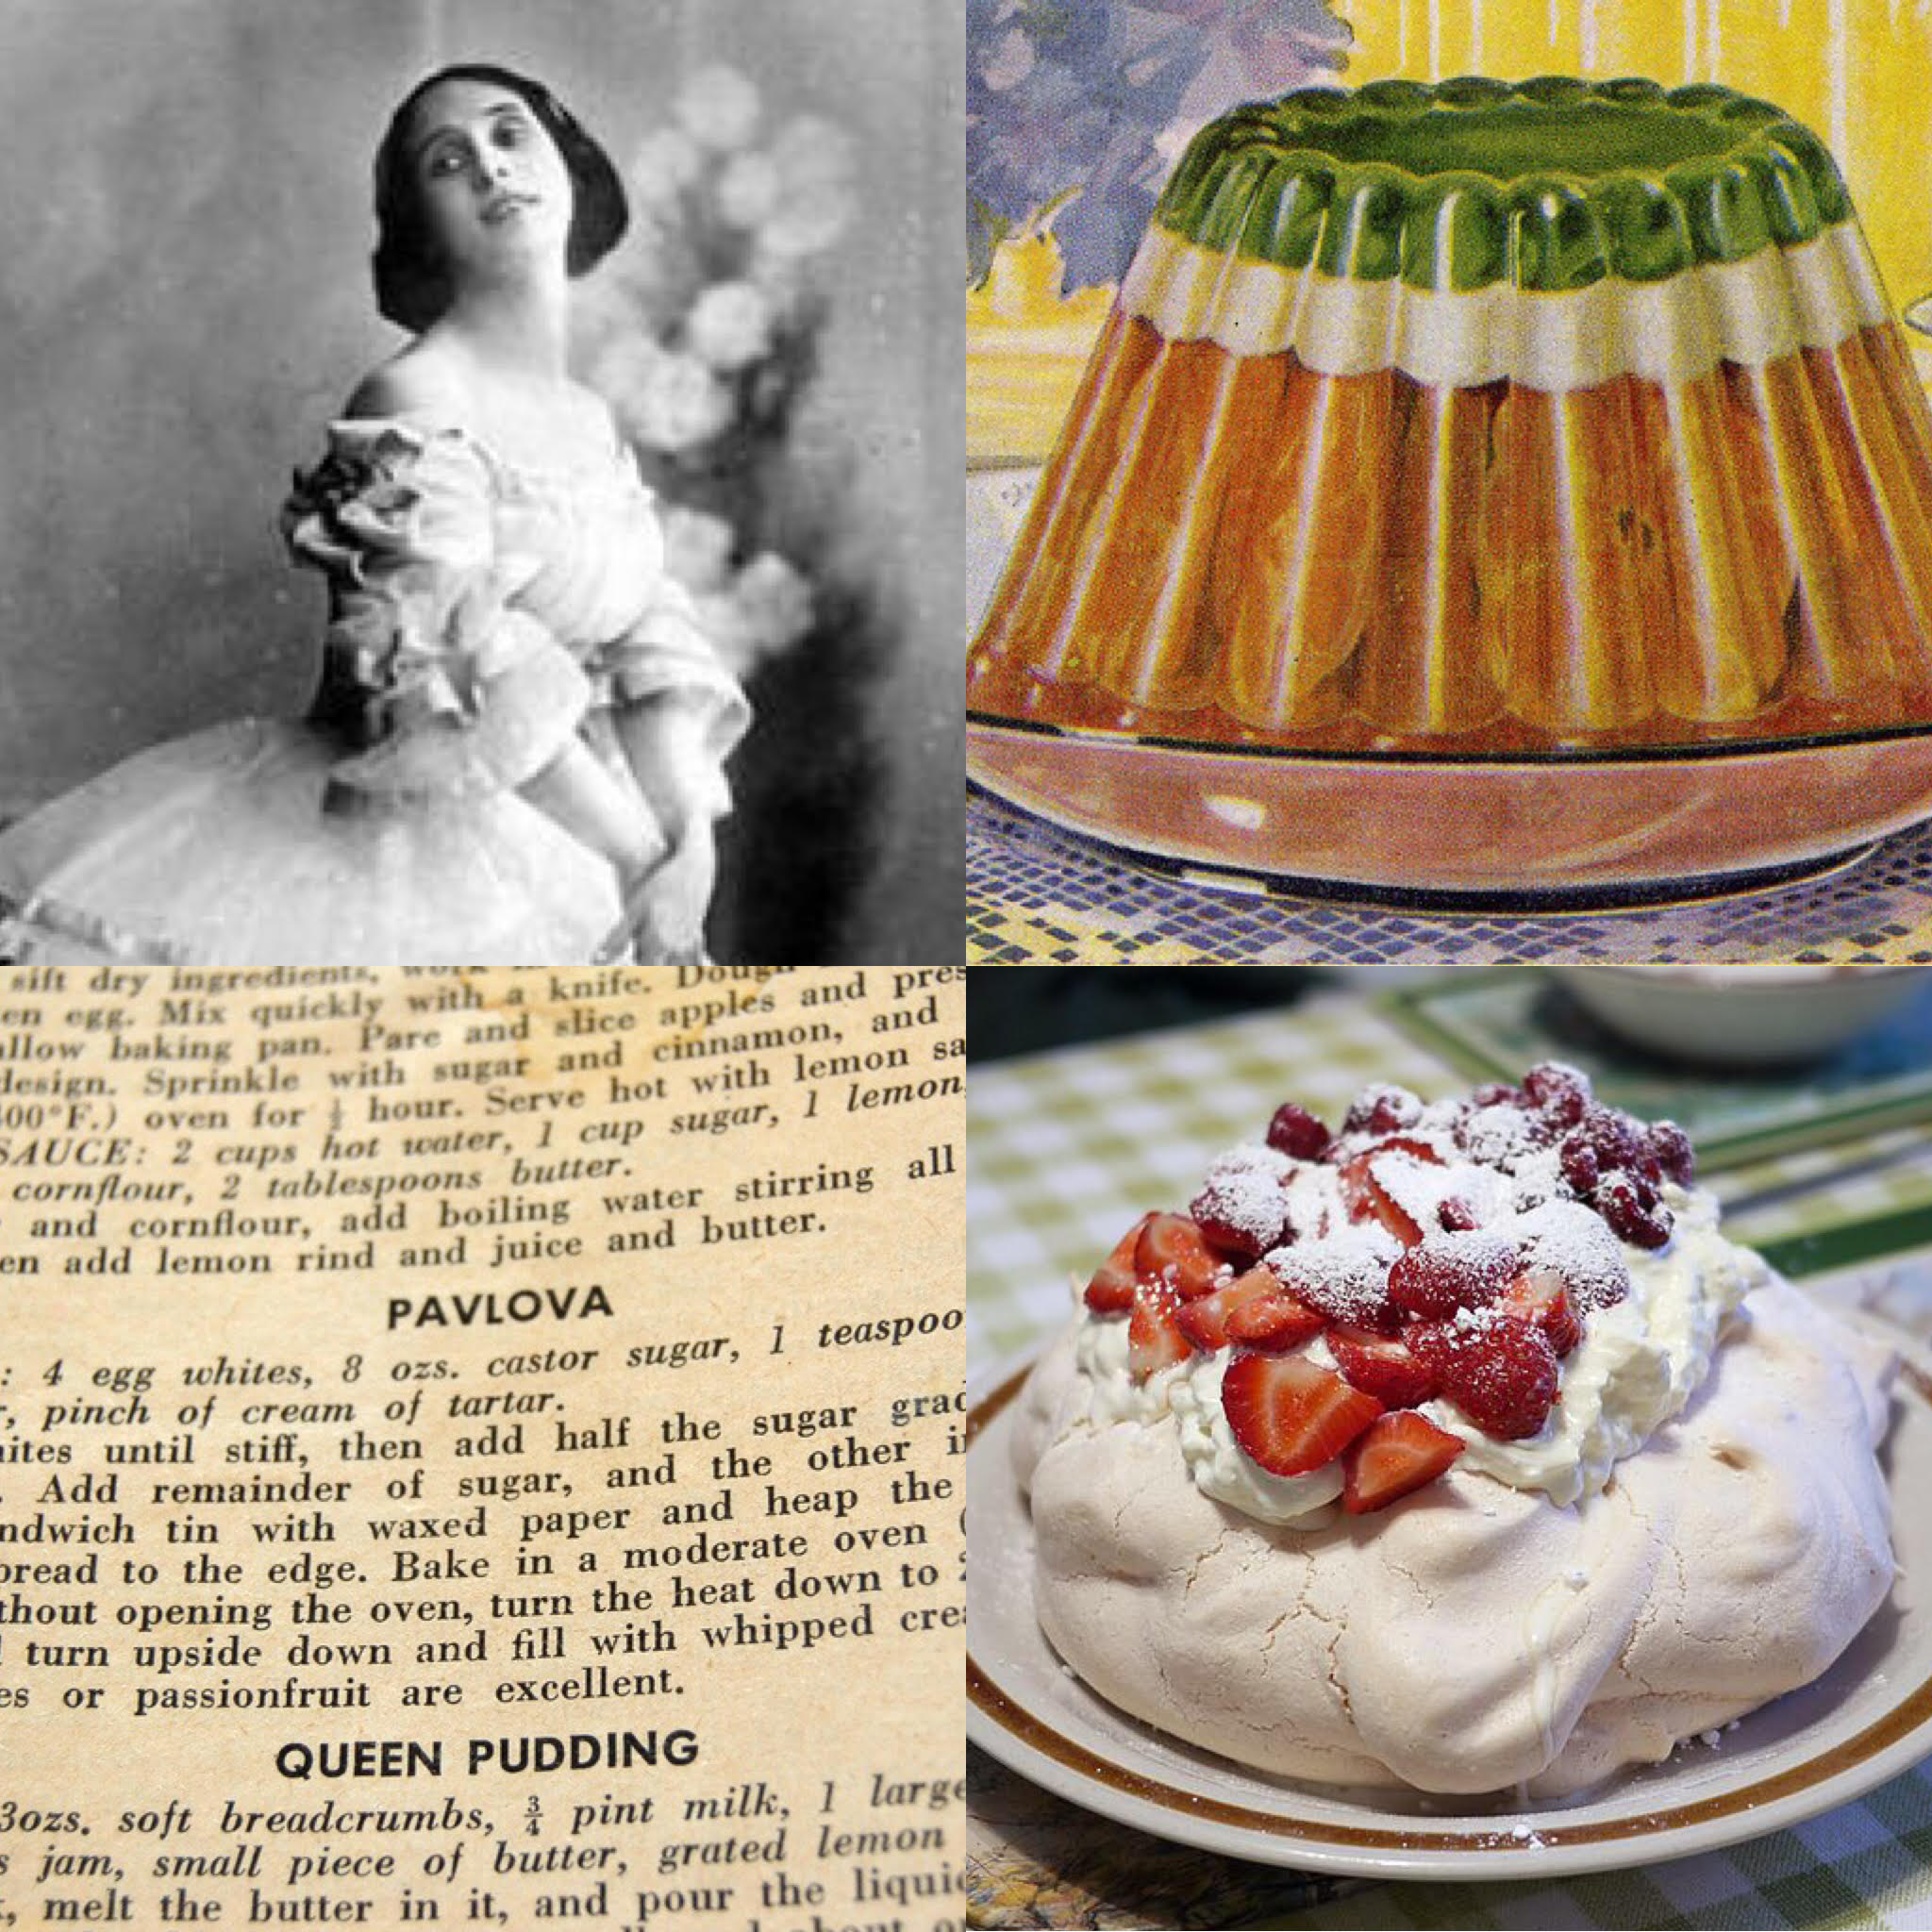 Our latest episode, out now!    Passionate Pavlovas: National Desserts from A to Z      Listen Here     From Caesar salad to Fettuccini Alfredo, we're surrounded by meals named for famous figures in history. But how many can claim to be the national dessert of not one, but two countries? This week, we're taking a look at the origins and history of the Pavlova, named for one of the world's first ballerina superstars. ..